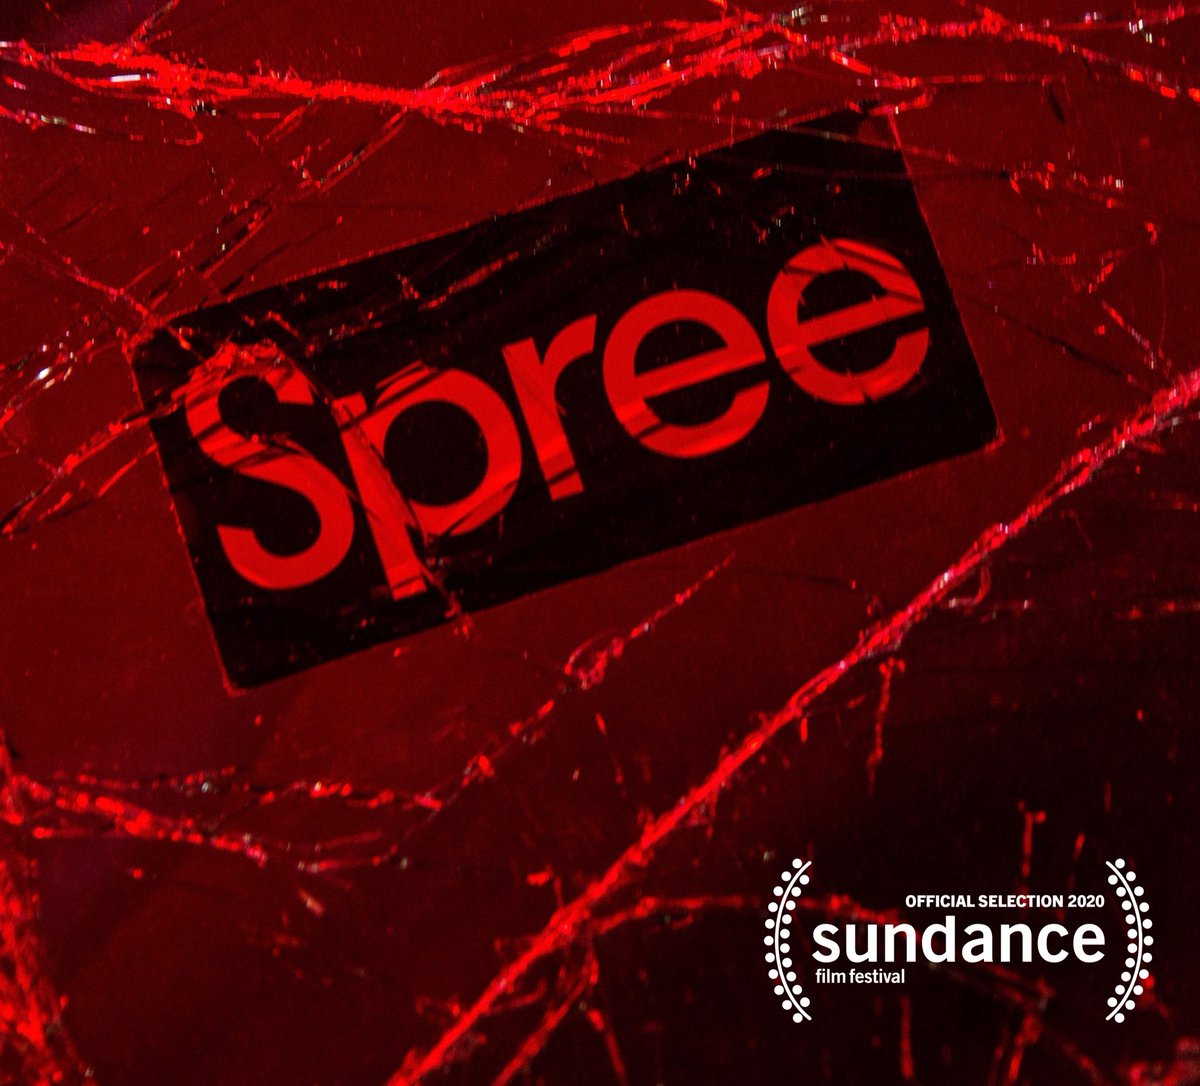 So stoked to be apart of #Spree such a joy to work with the brilliant @eugeugeug and the entire cast and crew. Thanks for having us #Sundance 🙌🙌🙌 https://t.co/60bTMMsgUu